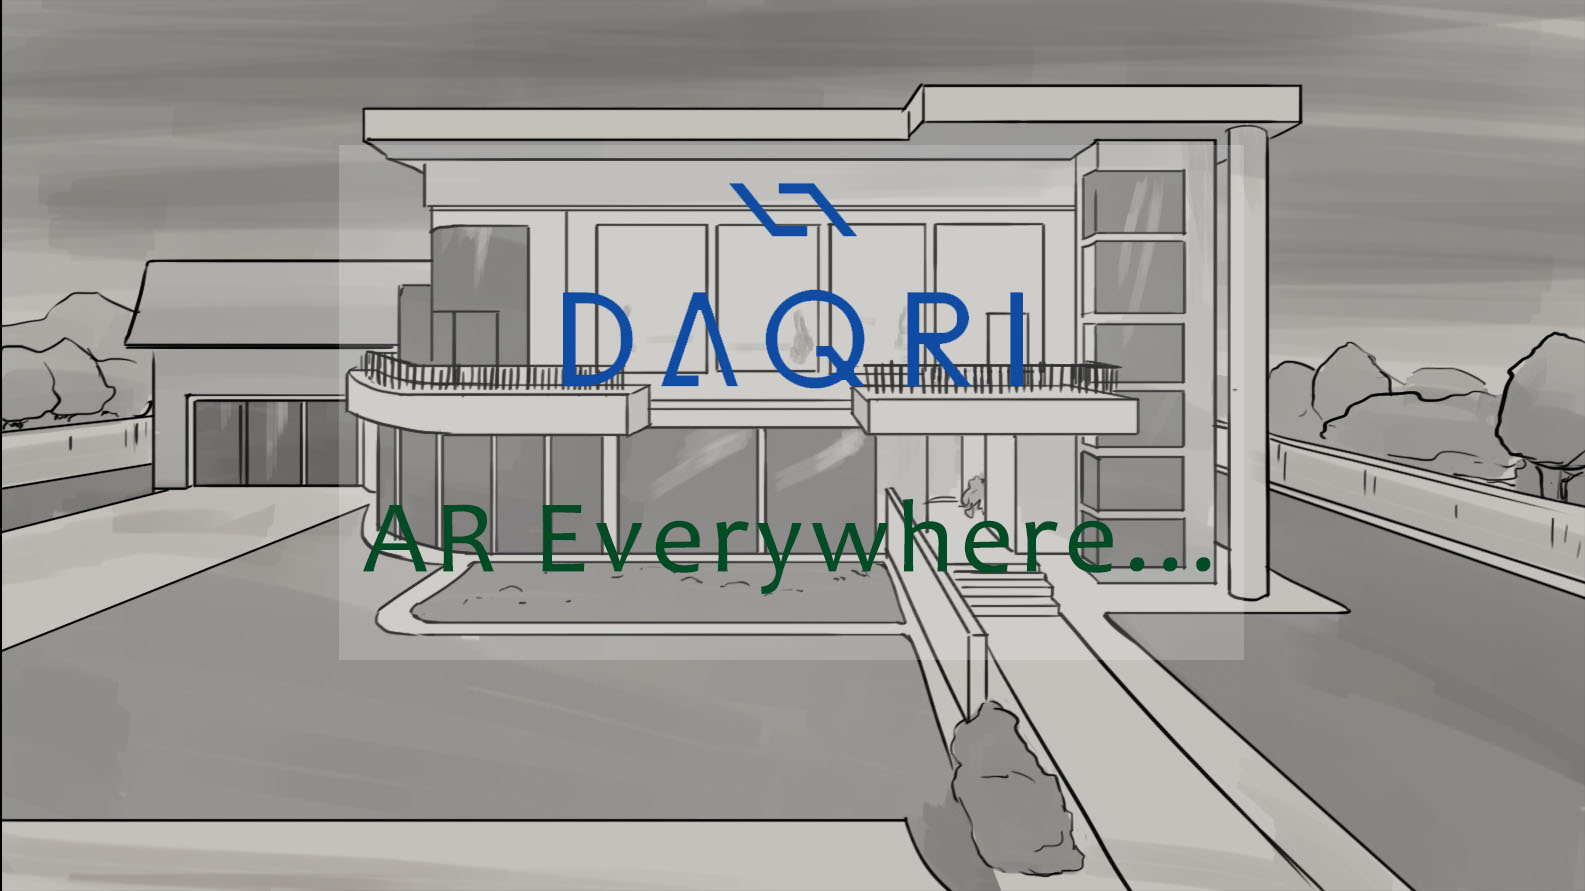 Storyboards VERSION 2 DAQRI FRAME 15.jpg